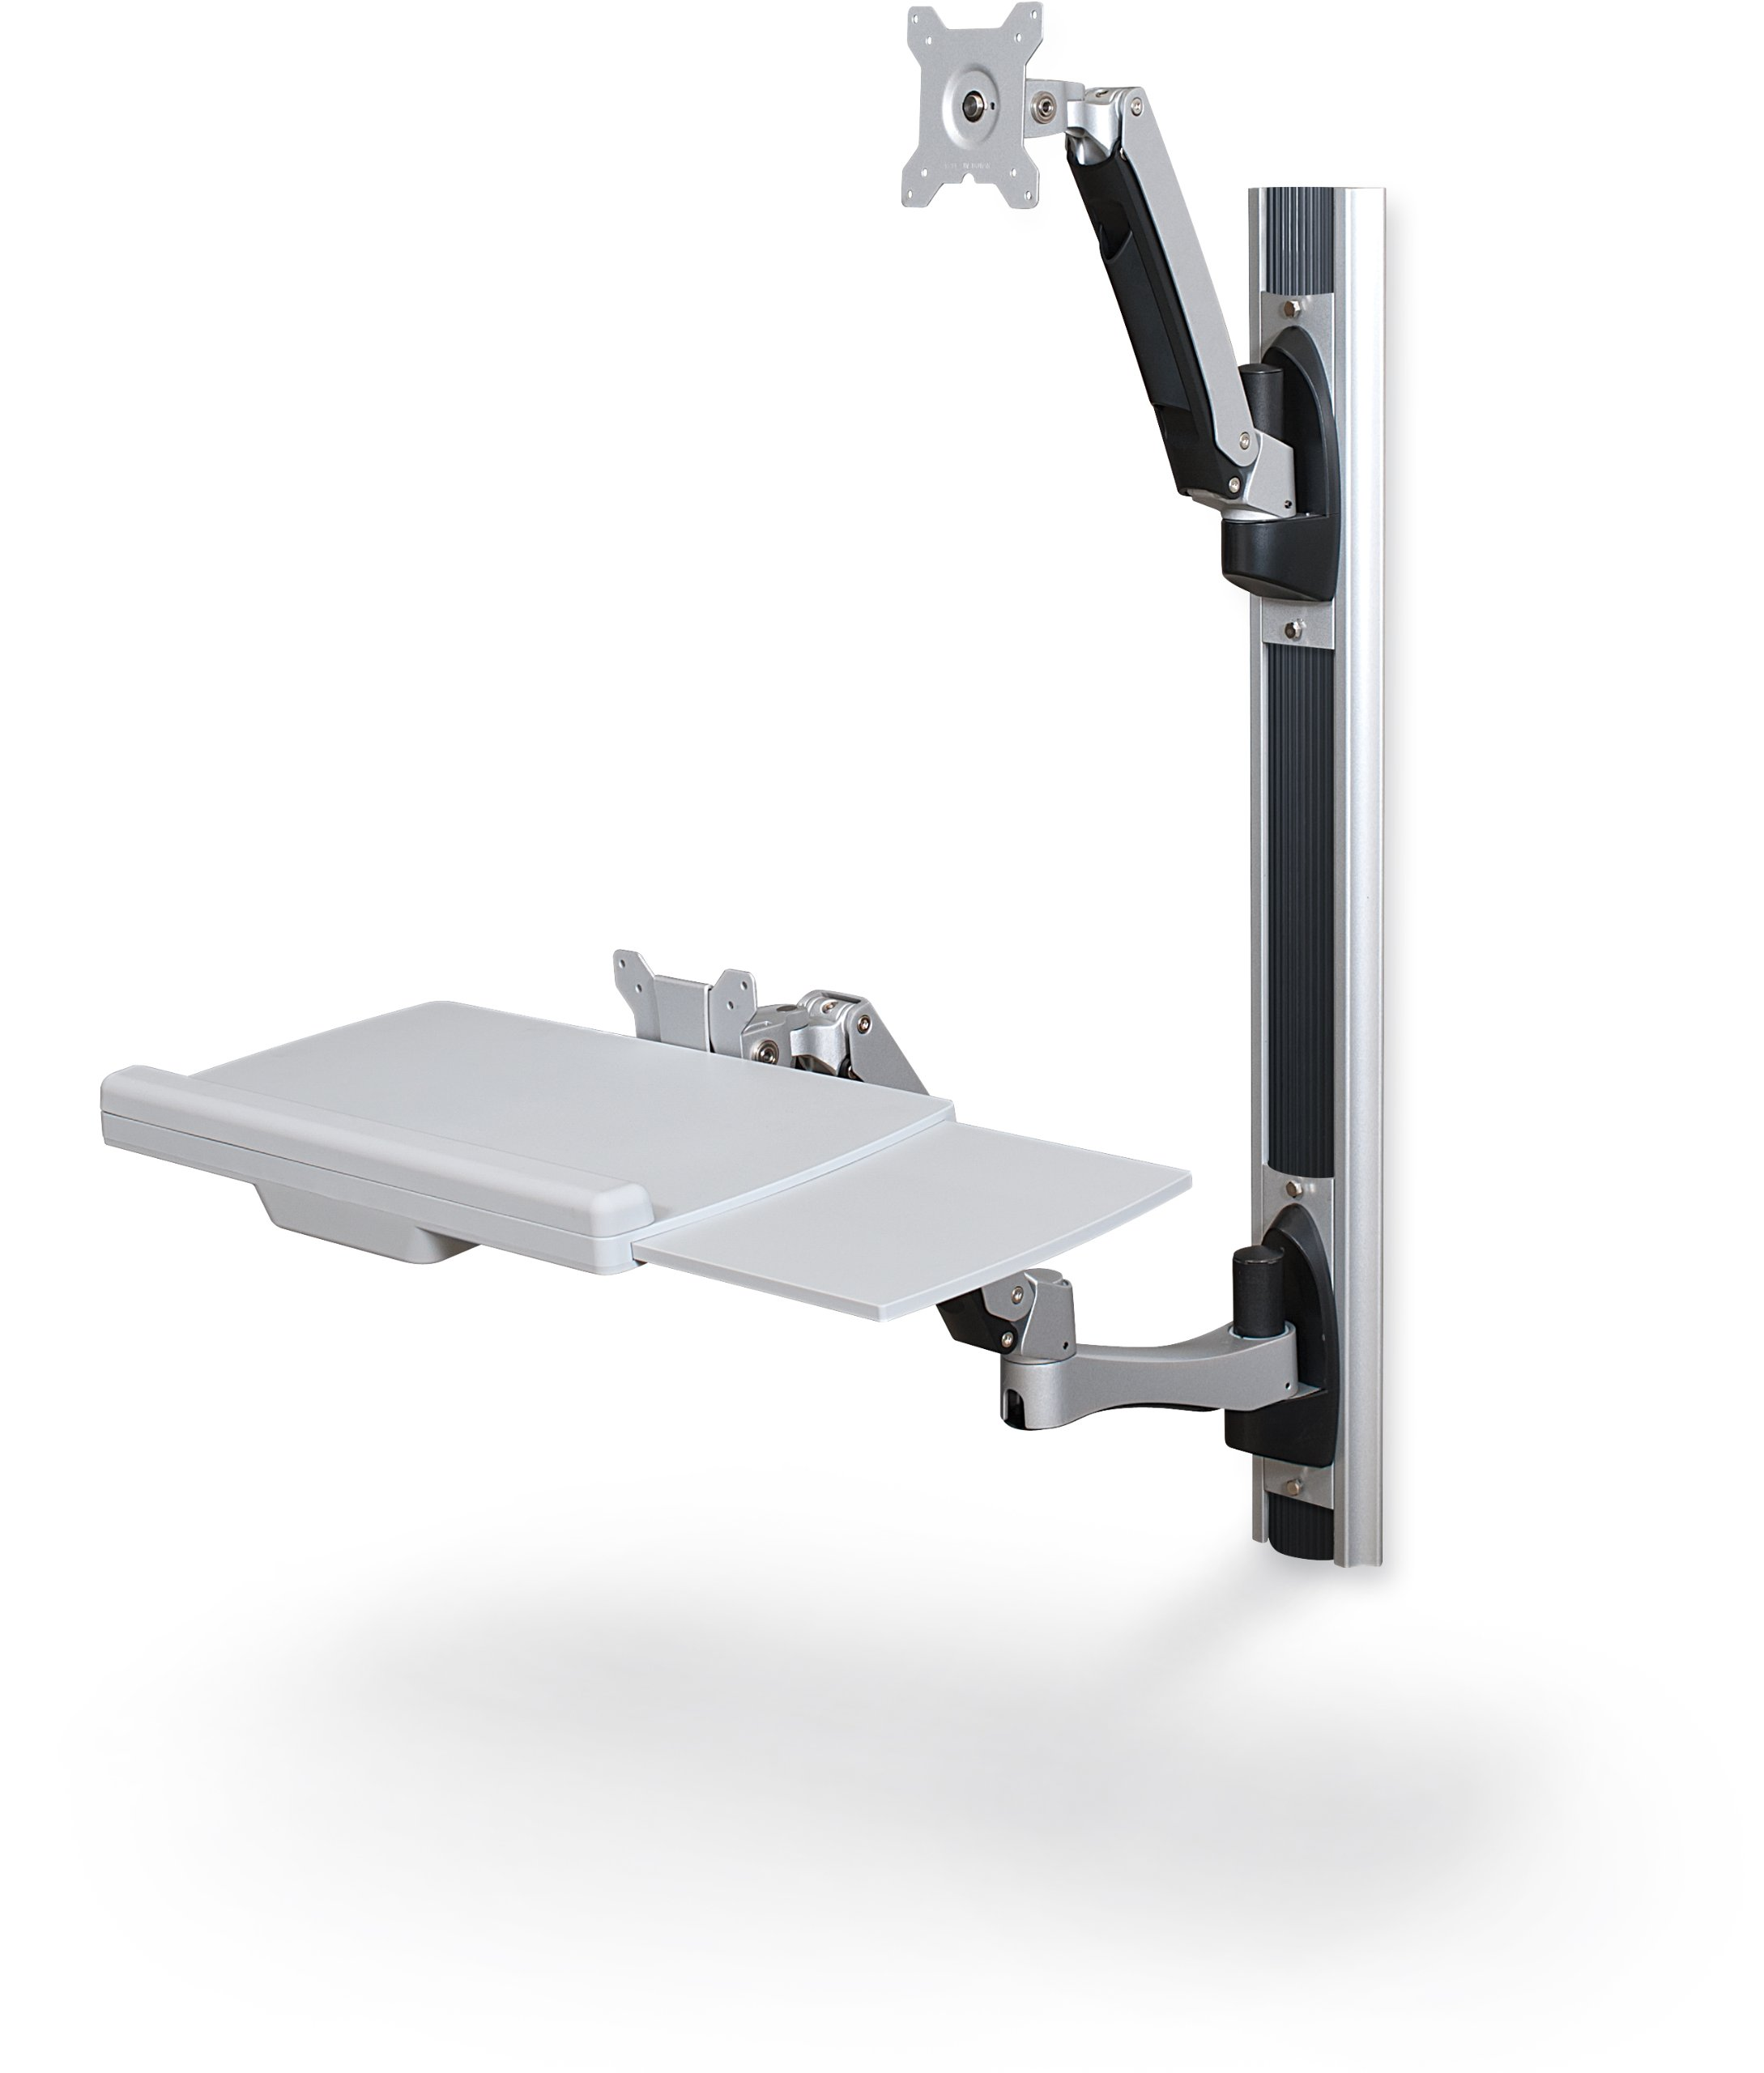 Balt 66644 HG Wall Mount Sit to Stand Workstation, 34.65''H x 22.87''W x 7.91''D